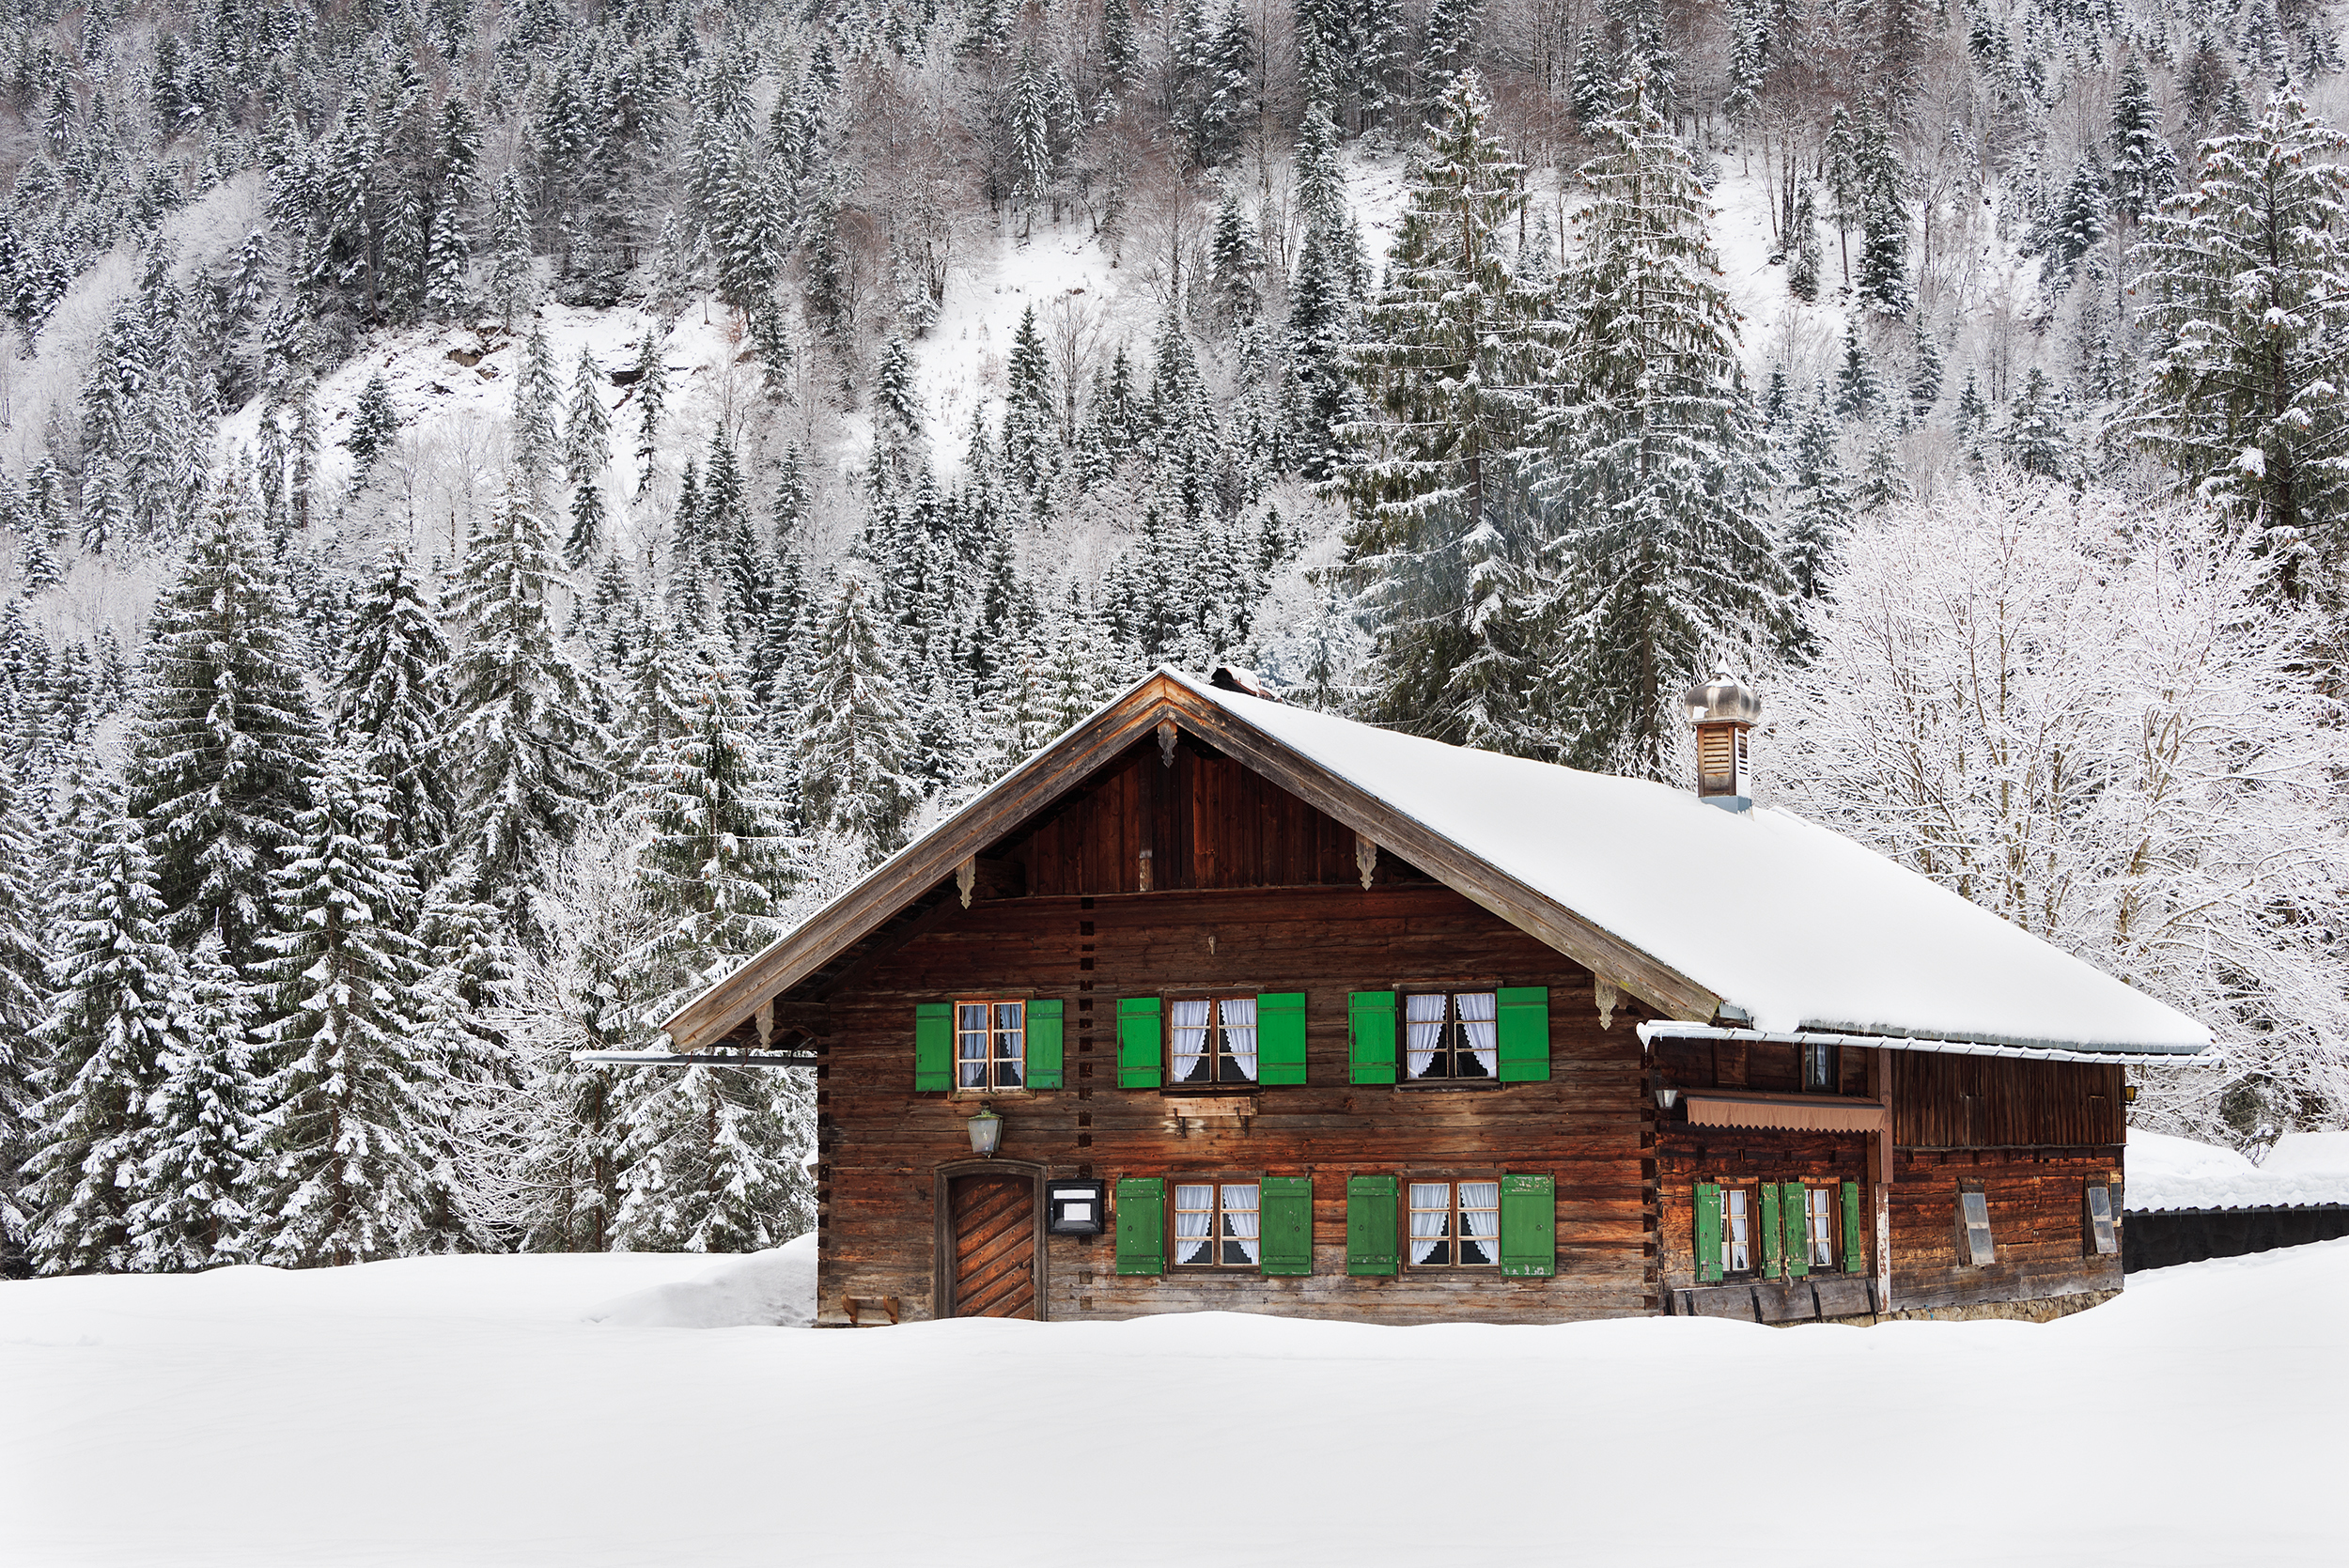 A ski cabin with a brown wooden exterior and green decorative details. The cabin is in the foreground and there are trees on the side of a mountain in the background. There is snow on the ground and on the trees.